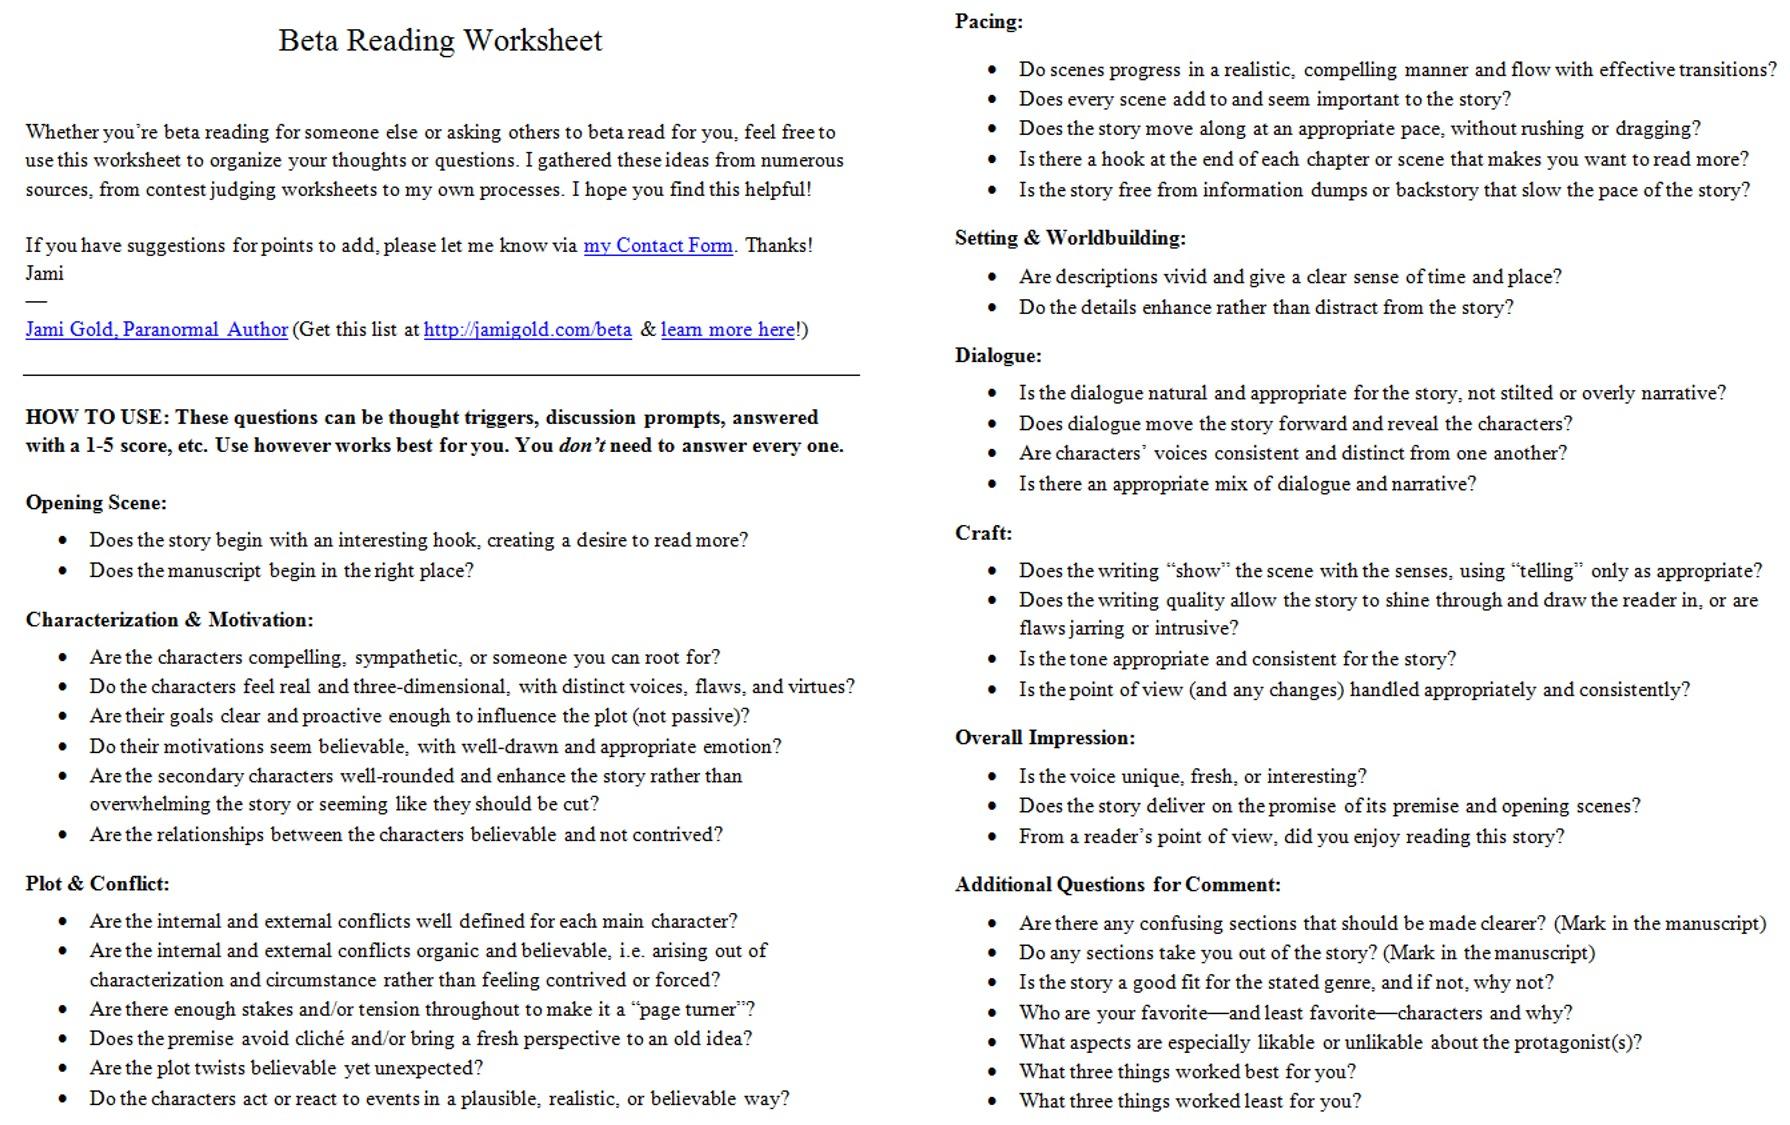 Proatmealus  Inspiring Worksheets For Writers  Jami Gold Paranormal Author With Excellent Screen Shot Of The Twopage Beta Reading Worksheet With Astonishing Addition Practice Worksheet Also Mixed Number Multiplication Worksheet In Addition Idaho Child Support Worksheet And Free Printable Fourth Grade Math Worksheets As Well As H Worksheet Additionally Decimal Of The Day Worksheet From Jamigoldcom With Proatmealus  Excellent Worksheets For Writers  Jami Gold Paranormal Author With Astonishing Screen Shot Of The Twopage Beta Reading Worksheet And Inspiring Addition Practice Worksheet Also Mixed Number Multiplication Worksheet In Addition Idaho Child Support Worksheet From Jamigoldcom